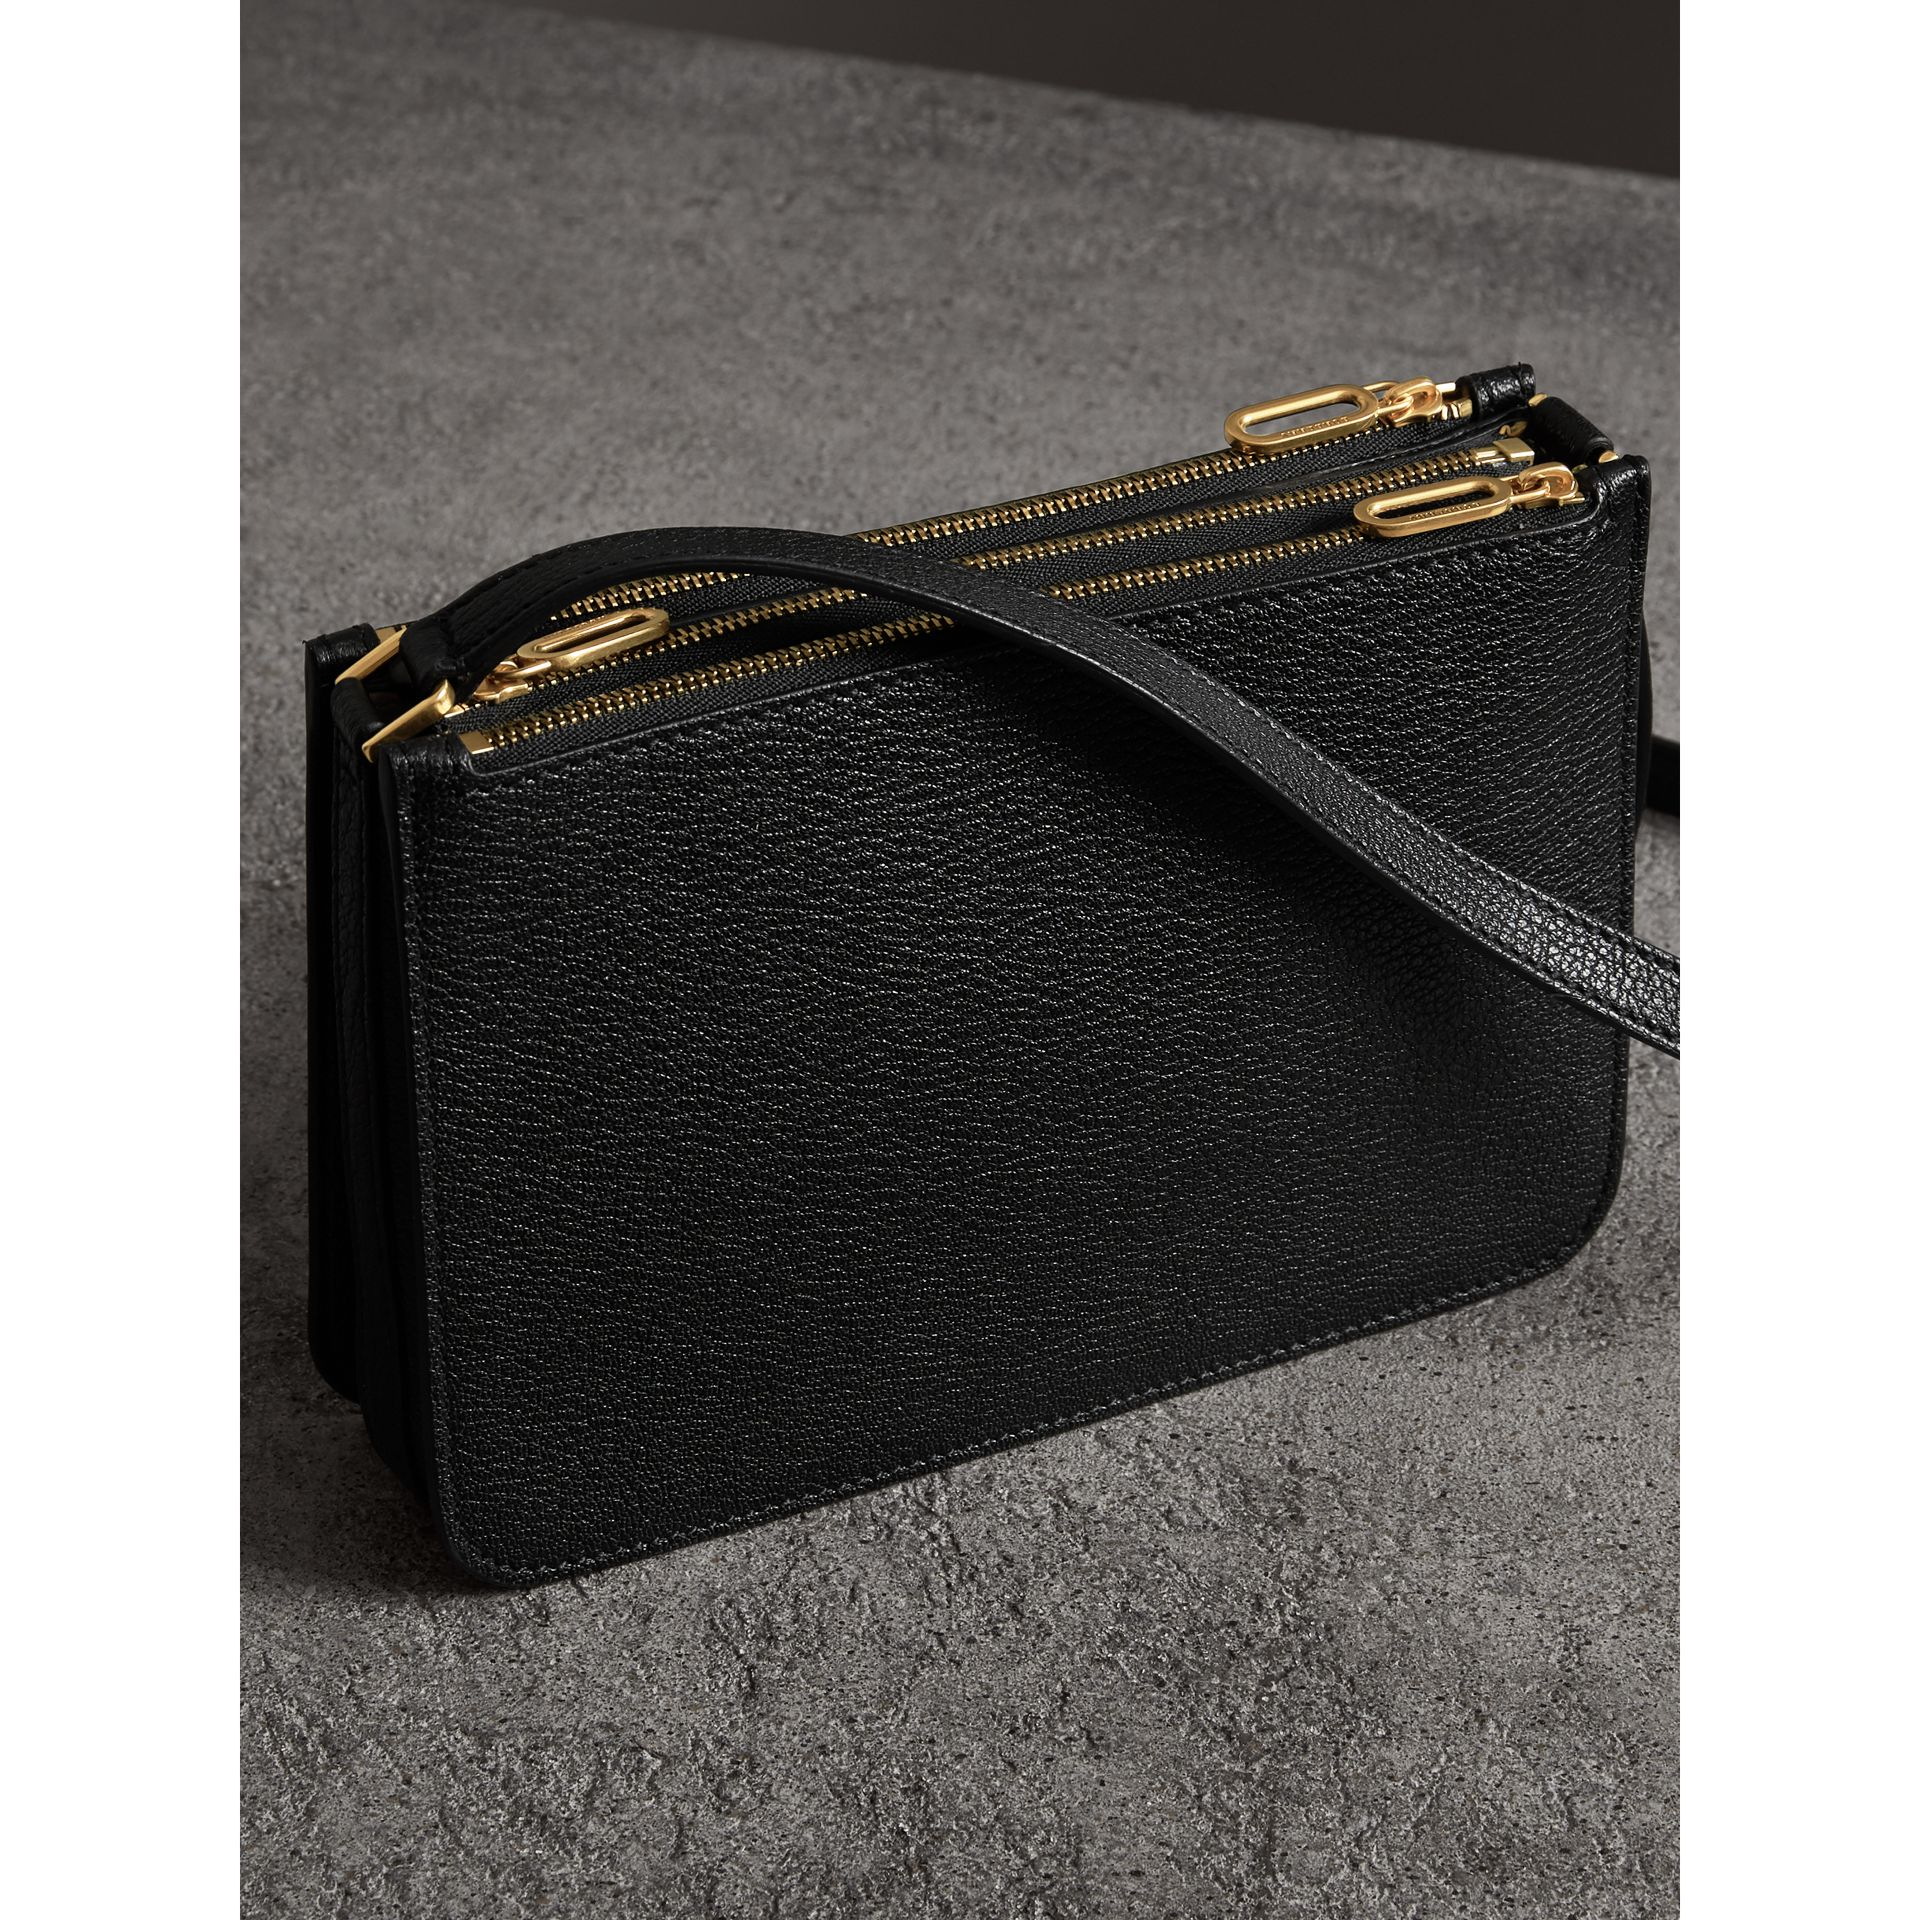 Triple Zip Grainy Leather Crossbody Bag in Black/gold - Women | Burberry - gallery image 4